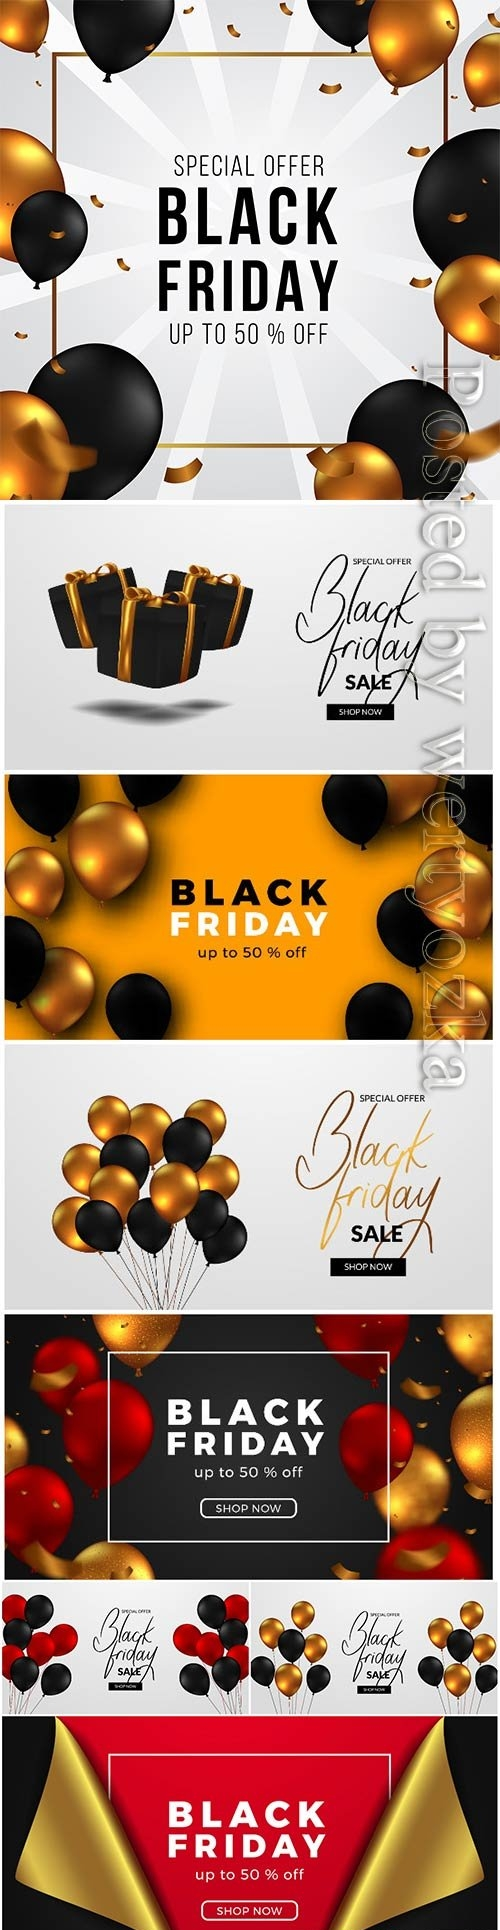 Black friday sale, red and golden balloon premium vector